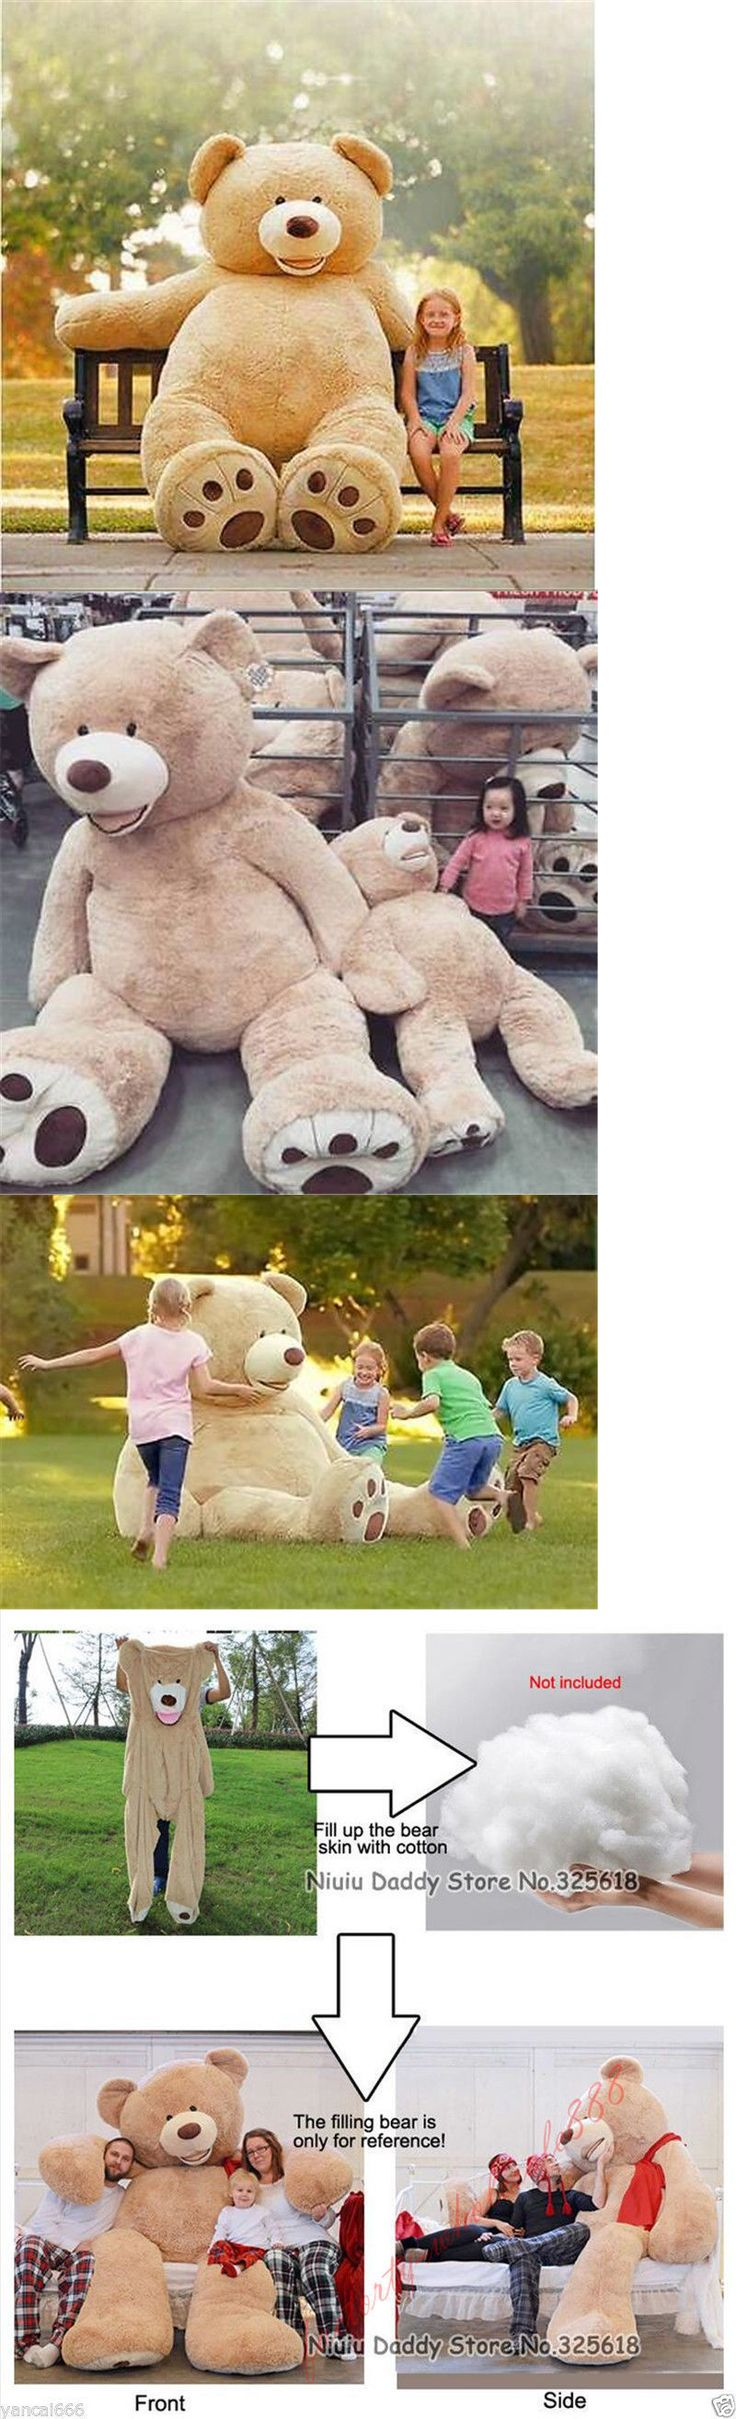 Plush Baby Toys 131084: Giant Teddy Bear Toy American Bear Cover With Zipper Plush Soft Gift 80Cm-340Cm -> BUY IT NOW ONLY: $93.31 on eBay!